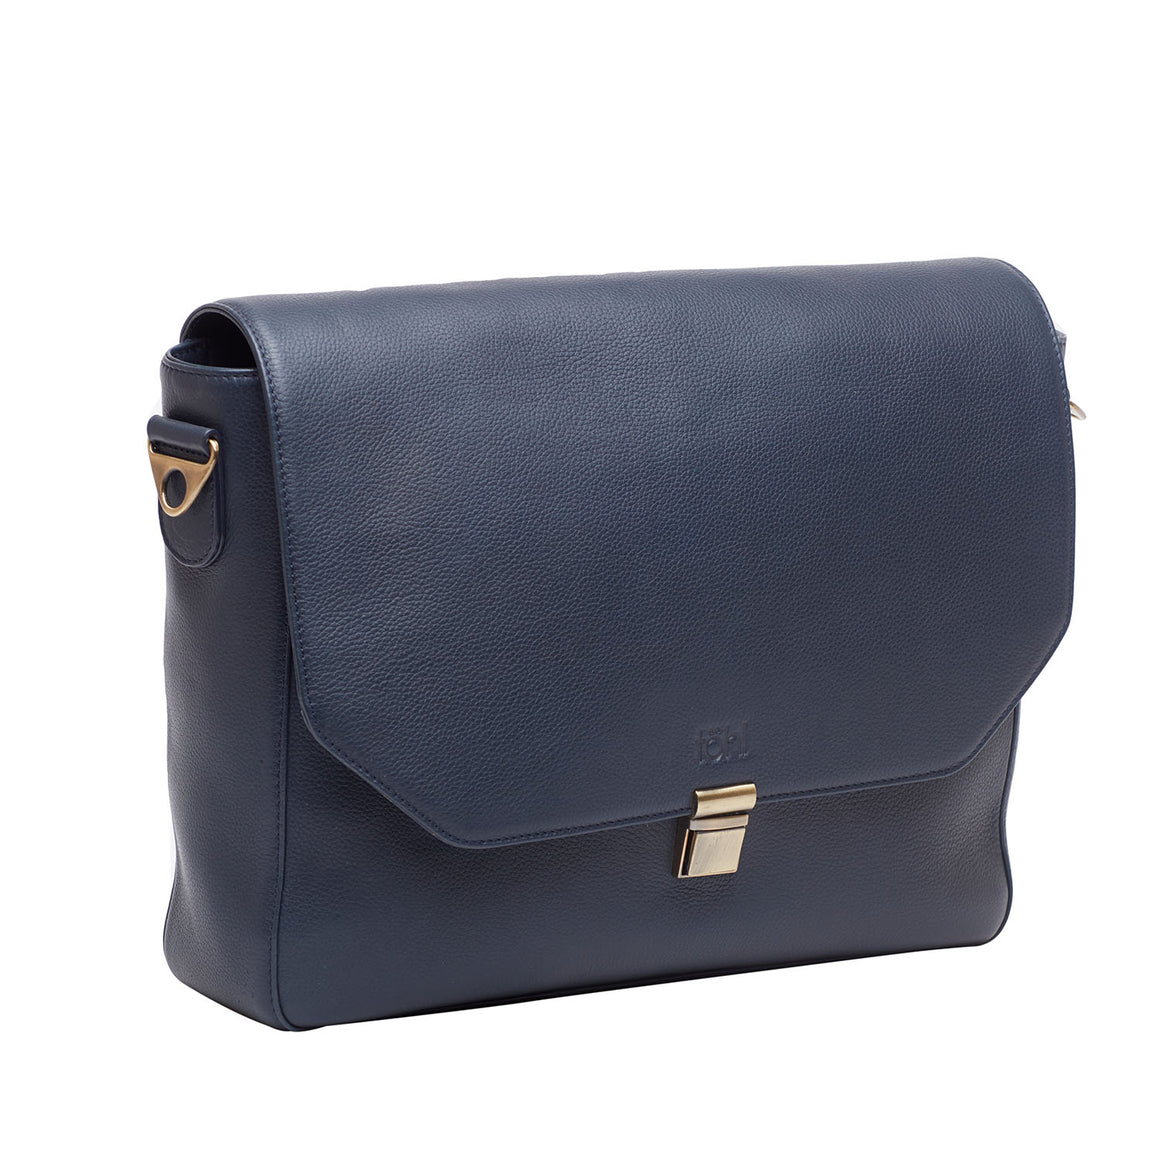 VS 0004 - TOHL PADINA MEN'S VALISES & SATCHELS - NAVY